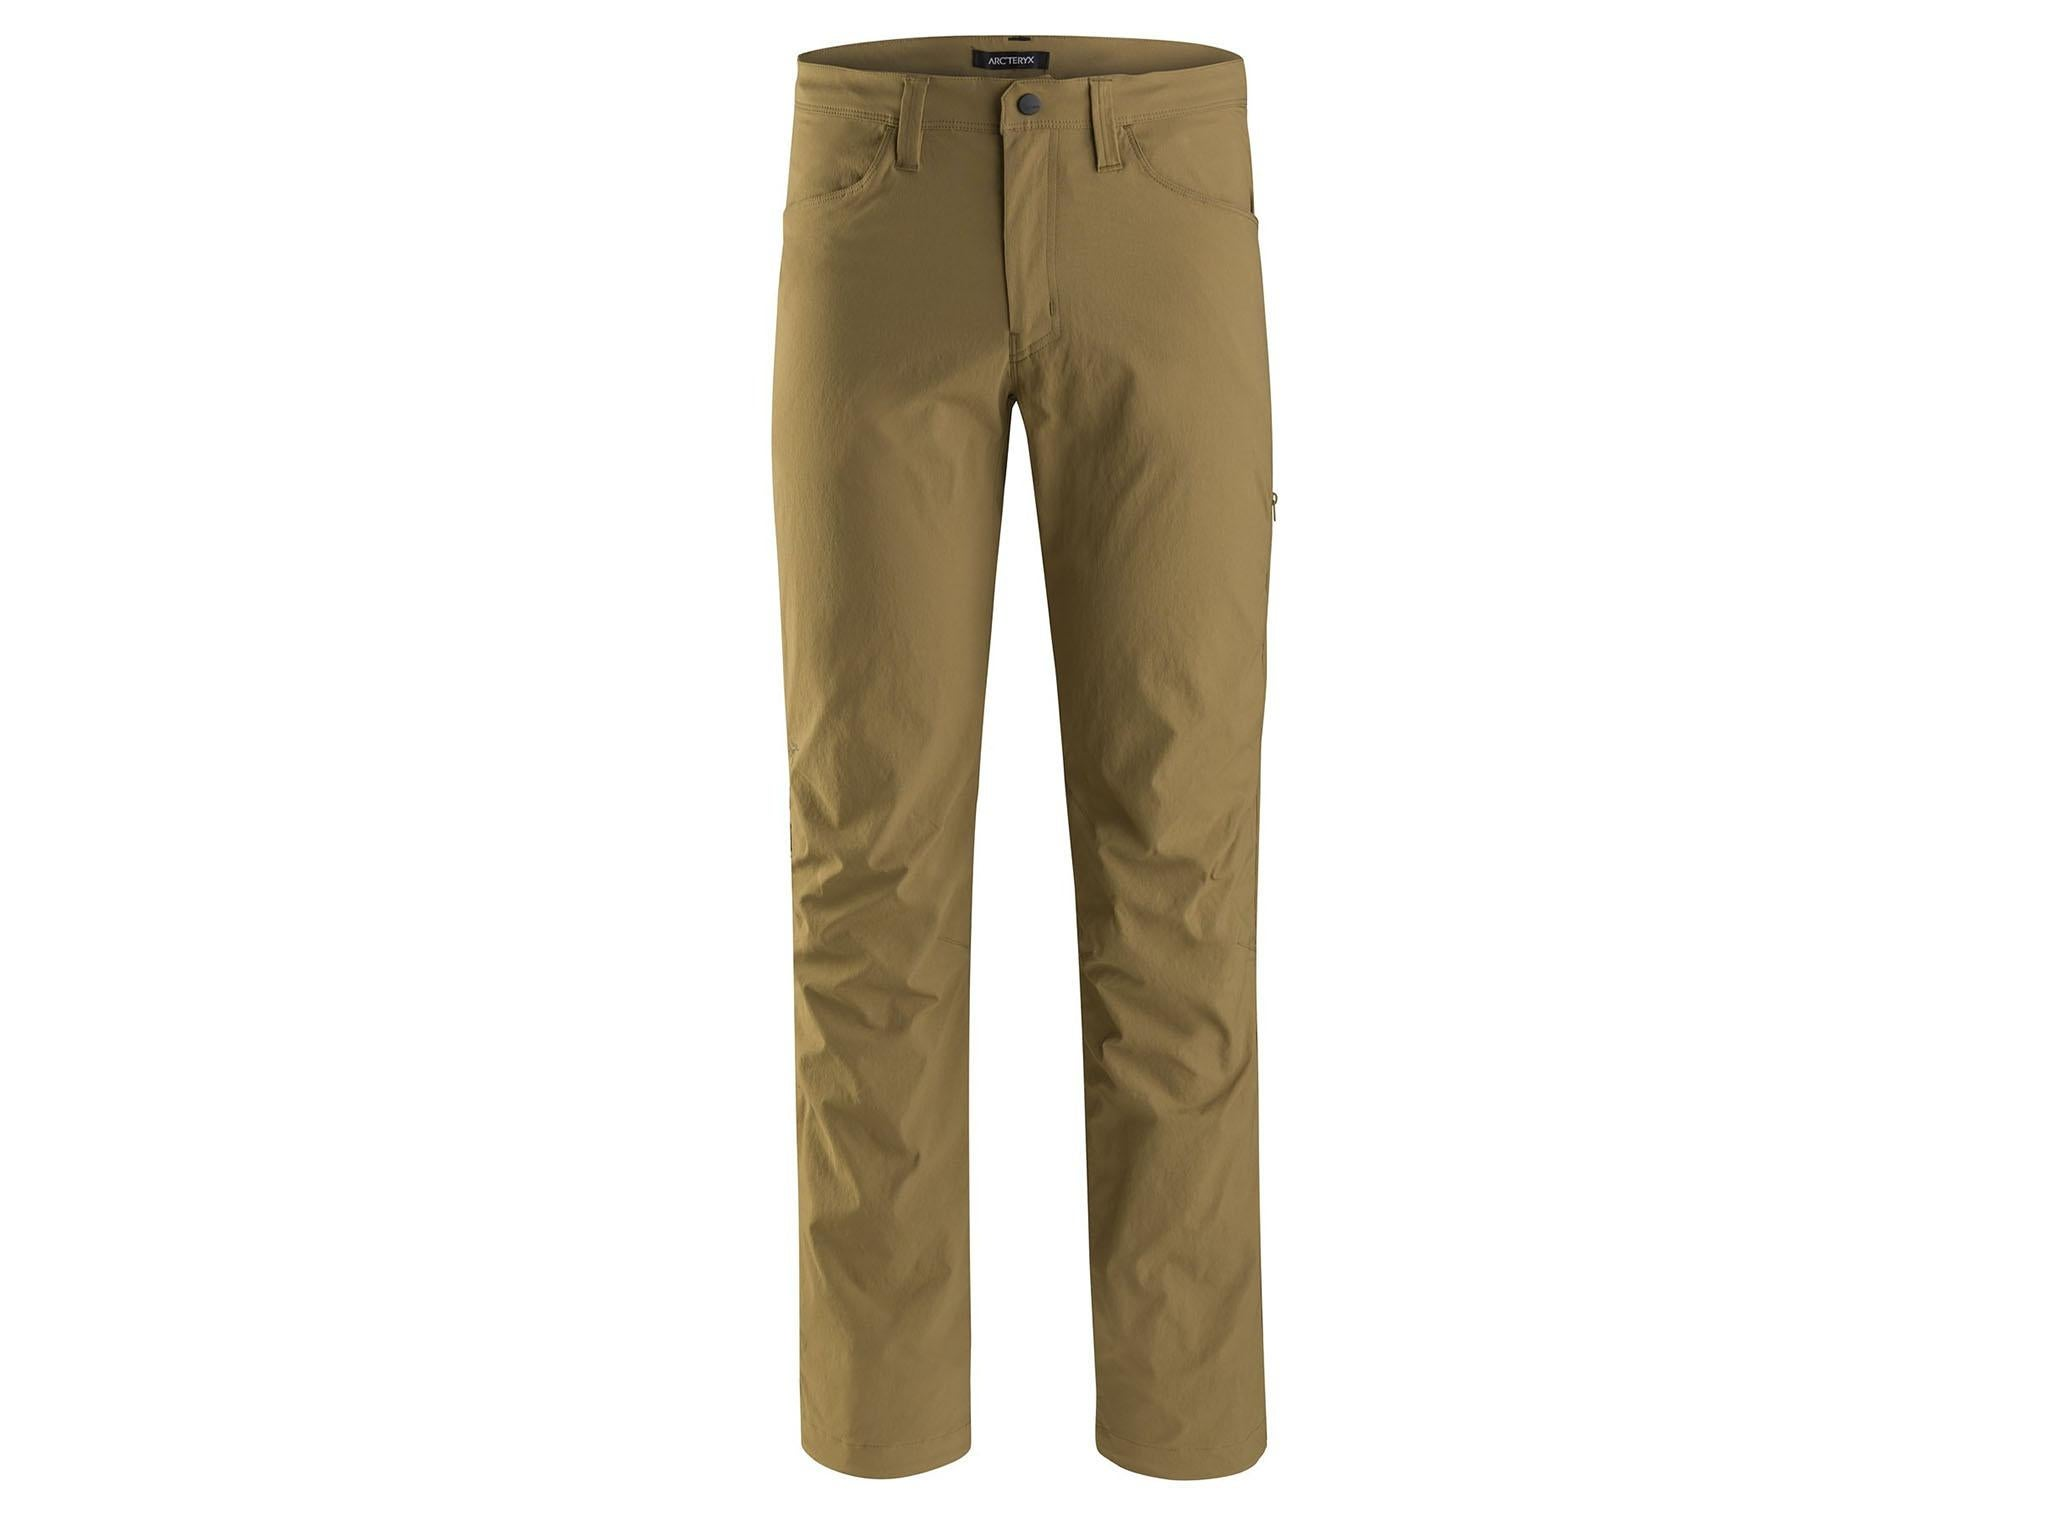 10 best walking trousers | The Independent